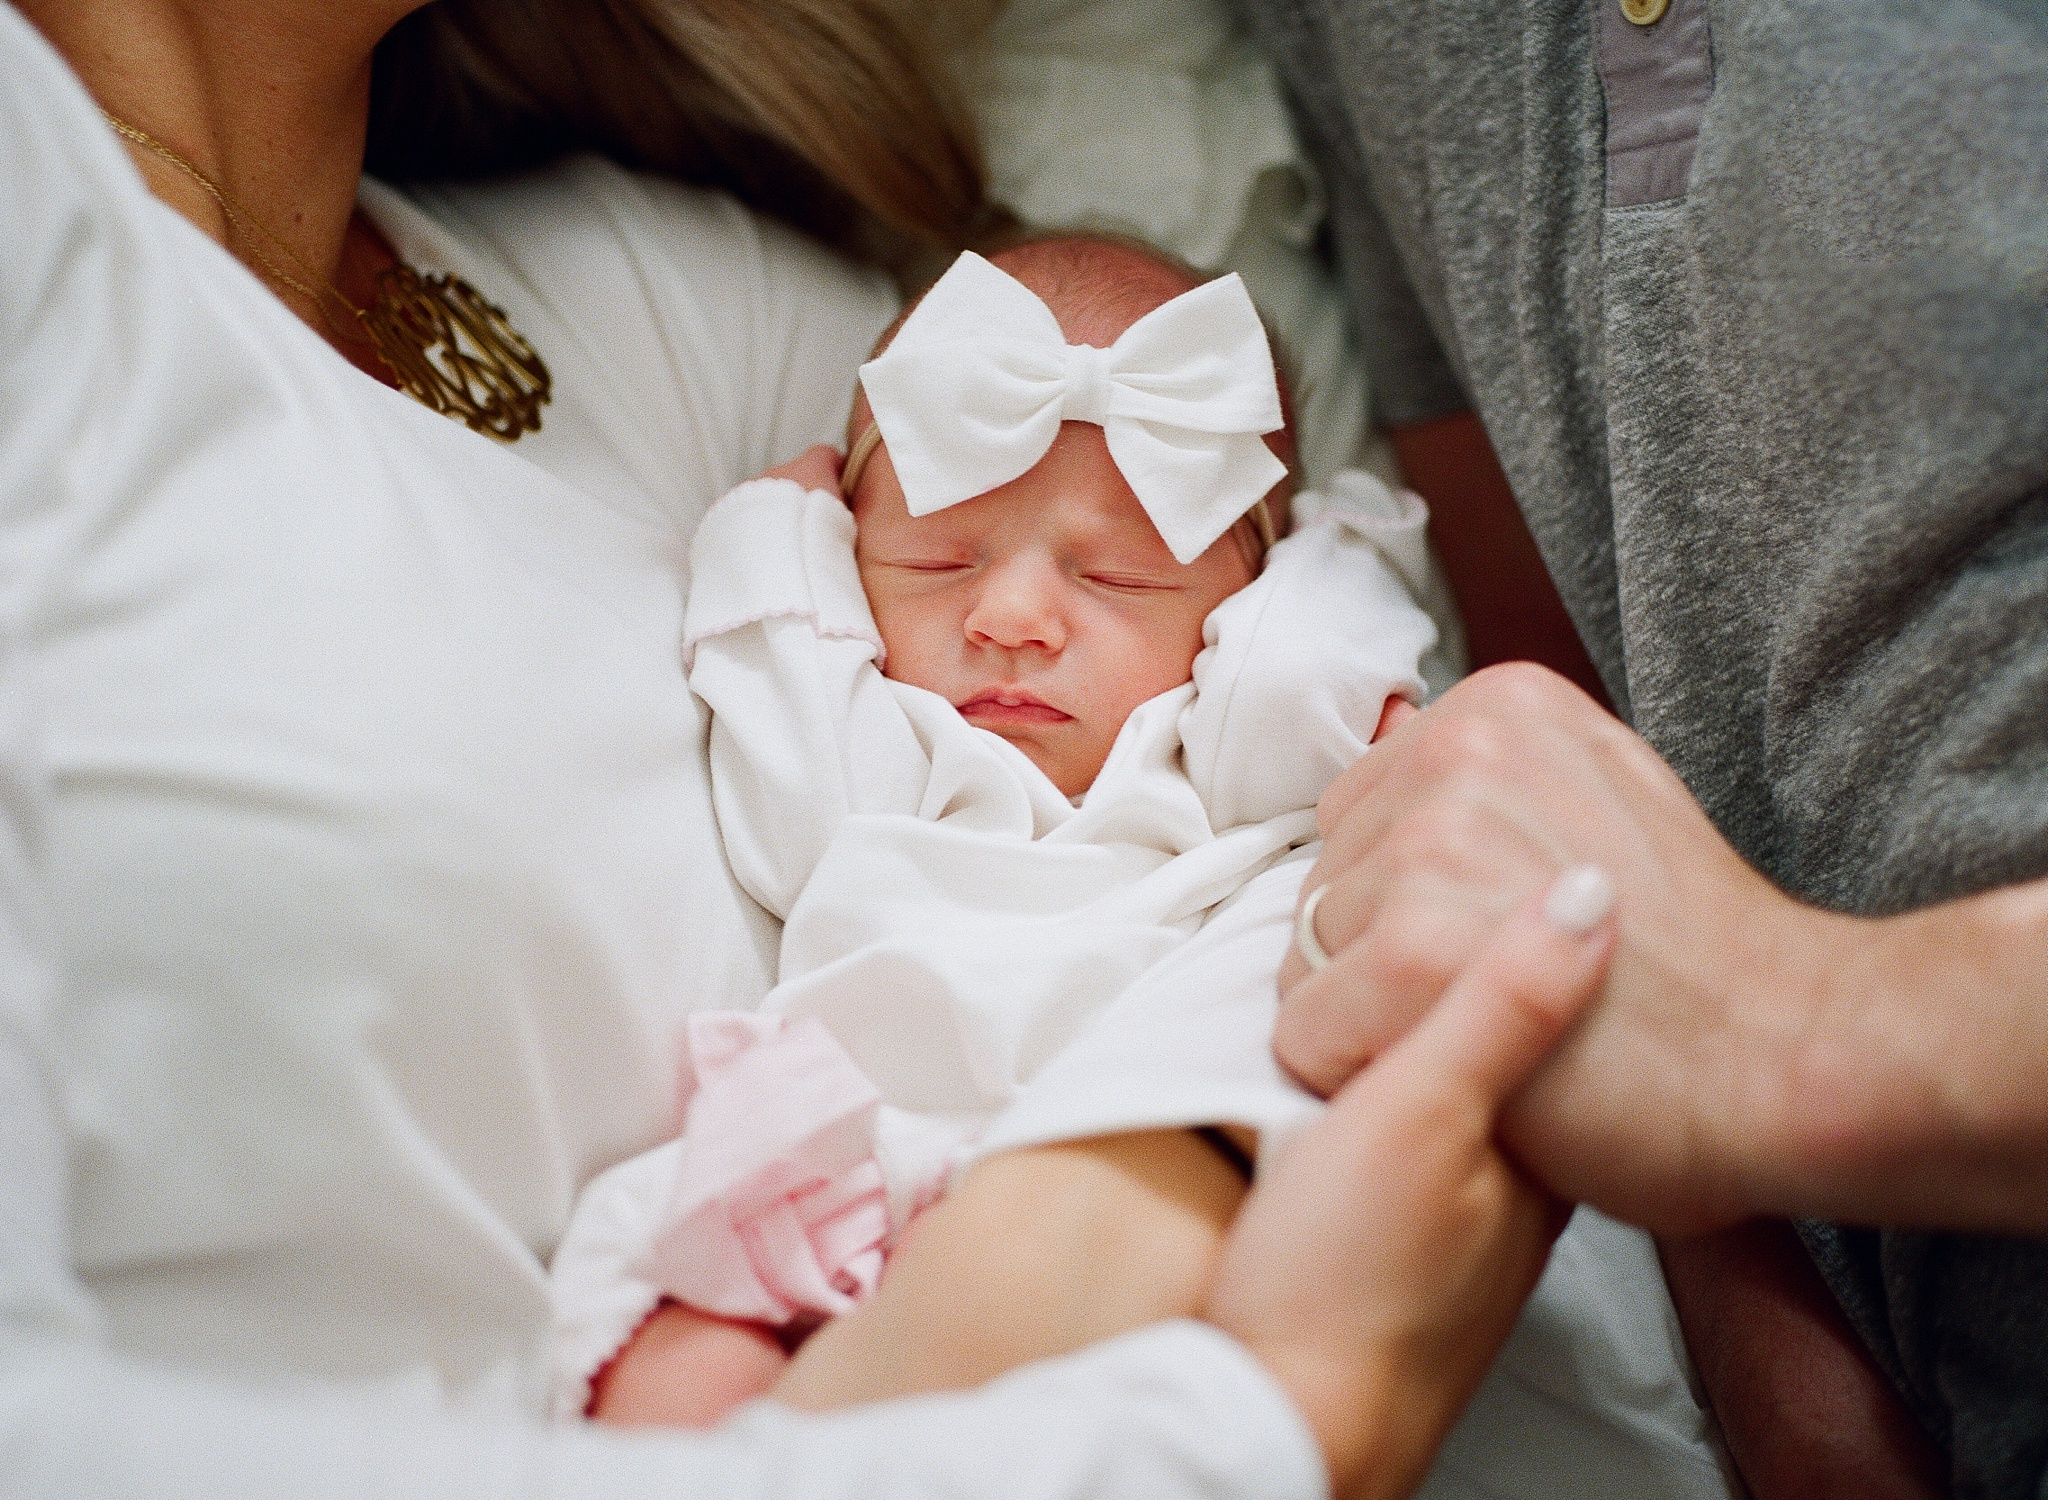 mcdonough-georgia-newborn-film-photographer-morgan-bullard-76.jpg